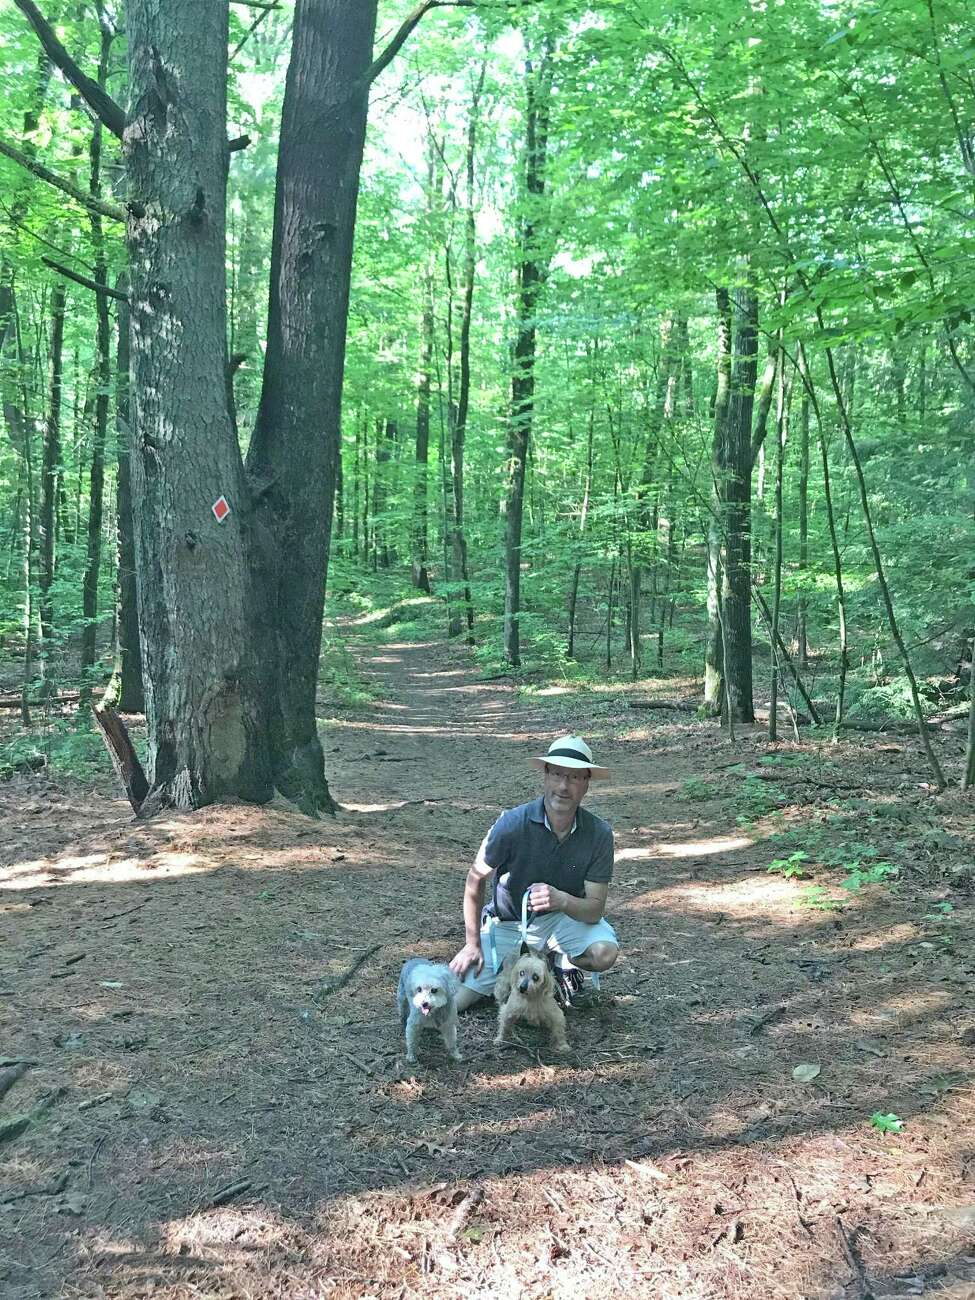 David Kalish of Halfmoon, a former Associated Press reporter, gathered the facts and round up support to help keep Saratoga County from performing logging operations in Kinns Road Park. He walks the park daily with dogs Luna and Tilly.